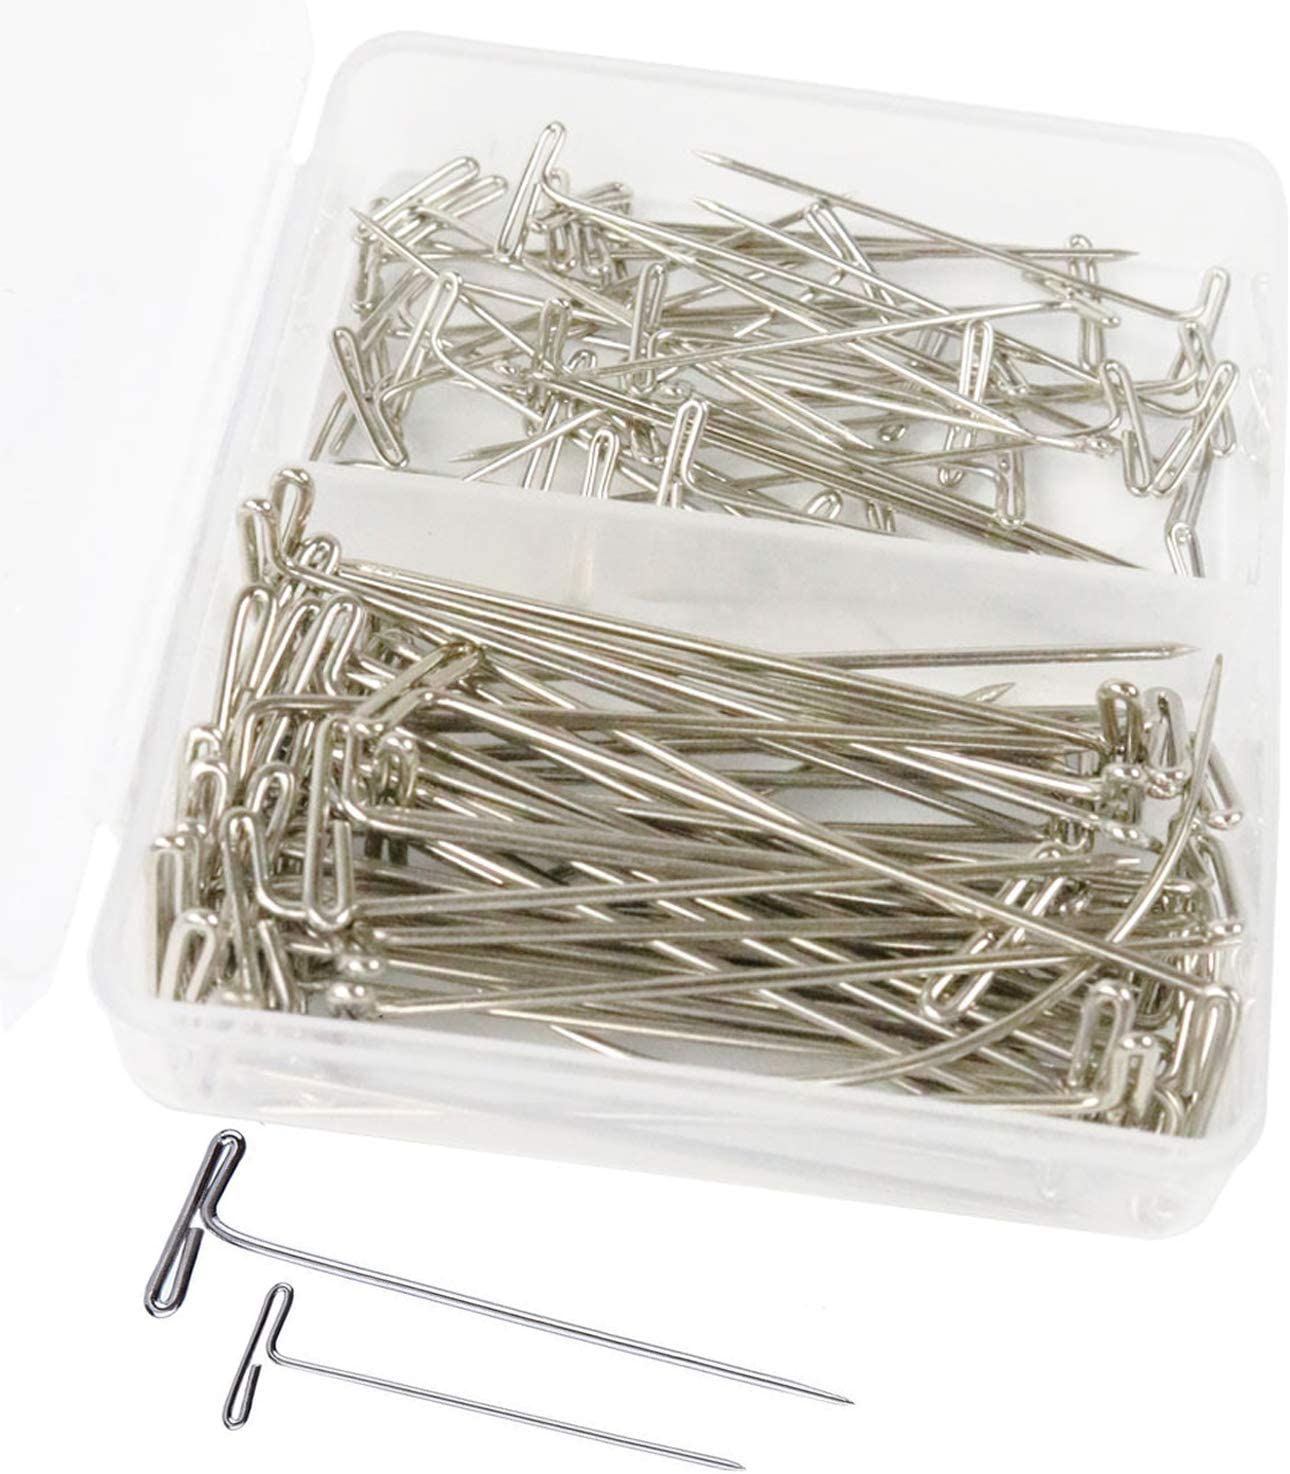 Multi-Purpose Clips,50 pcs Red Blinder Clips Paper Clips GLE2016 Sewing Clips